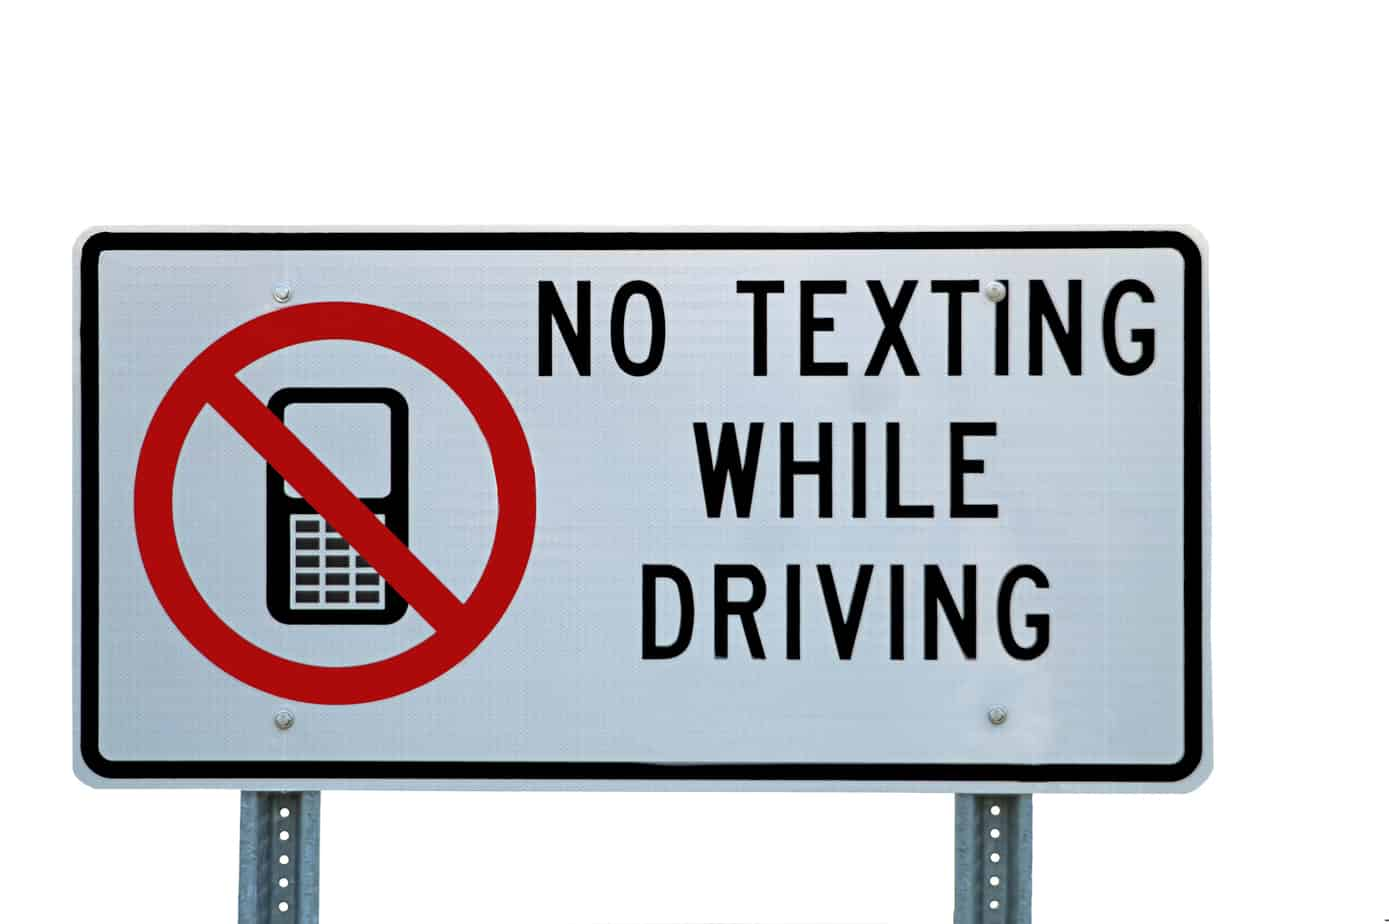 texting driving Texting and driving pledge may be the most powerful anti-texting and driving tool available read more about the pledge and some texting and driving quotes.